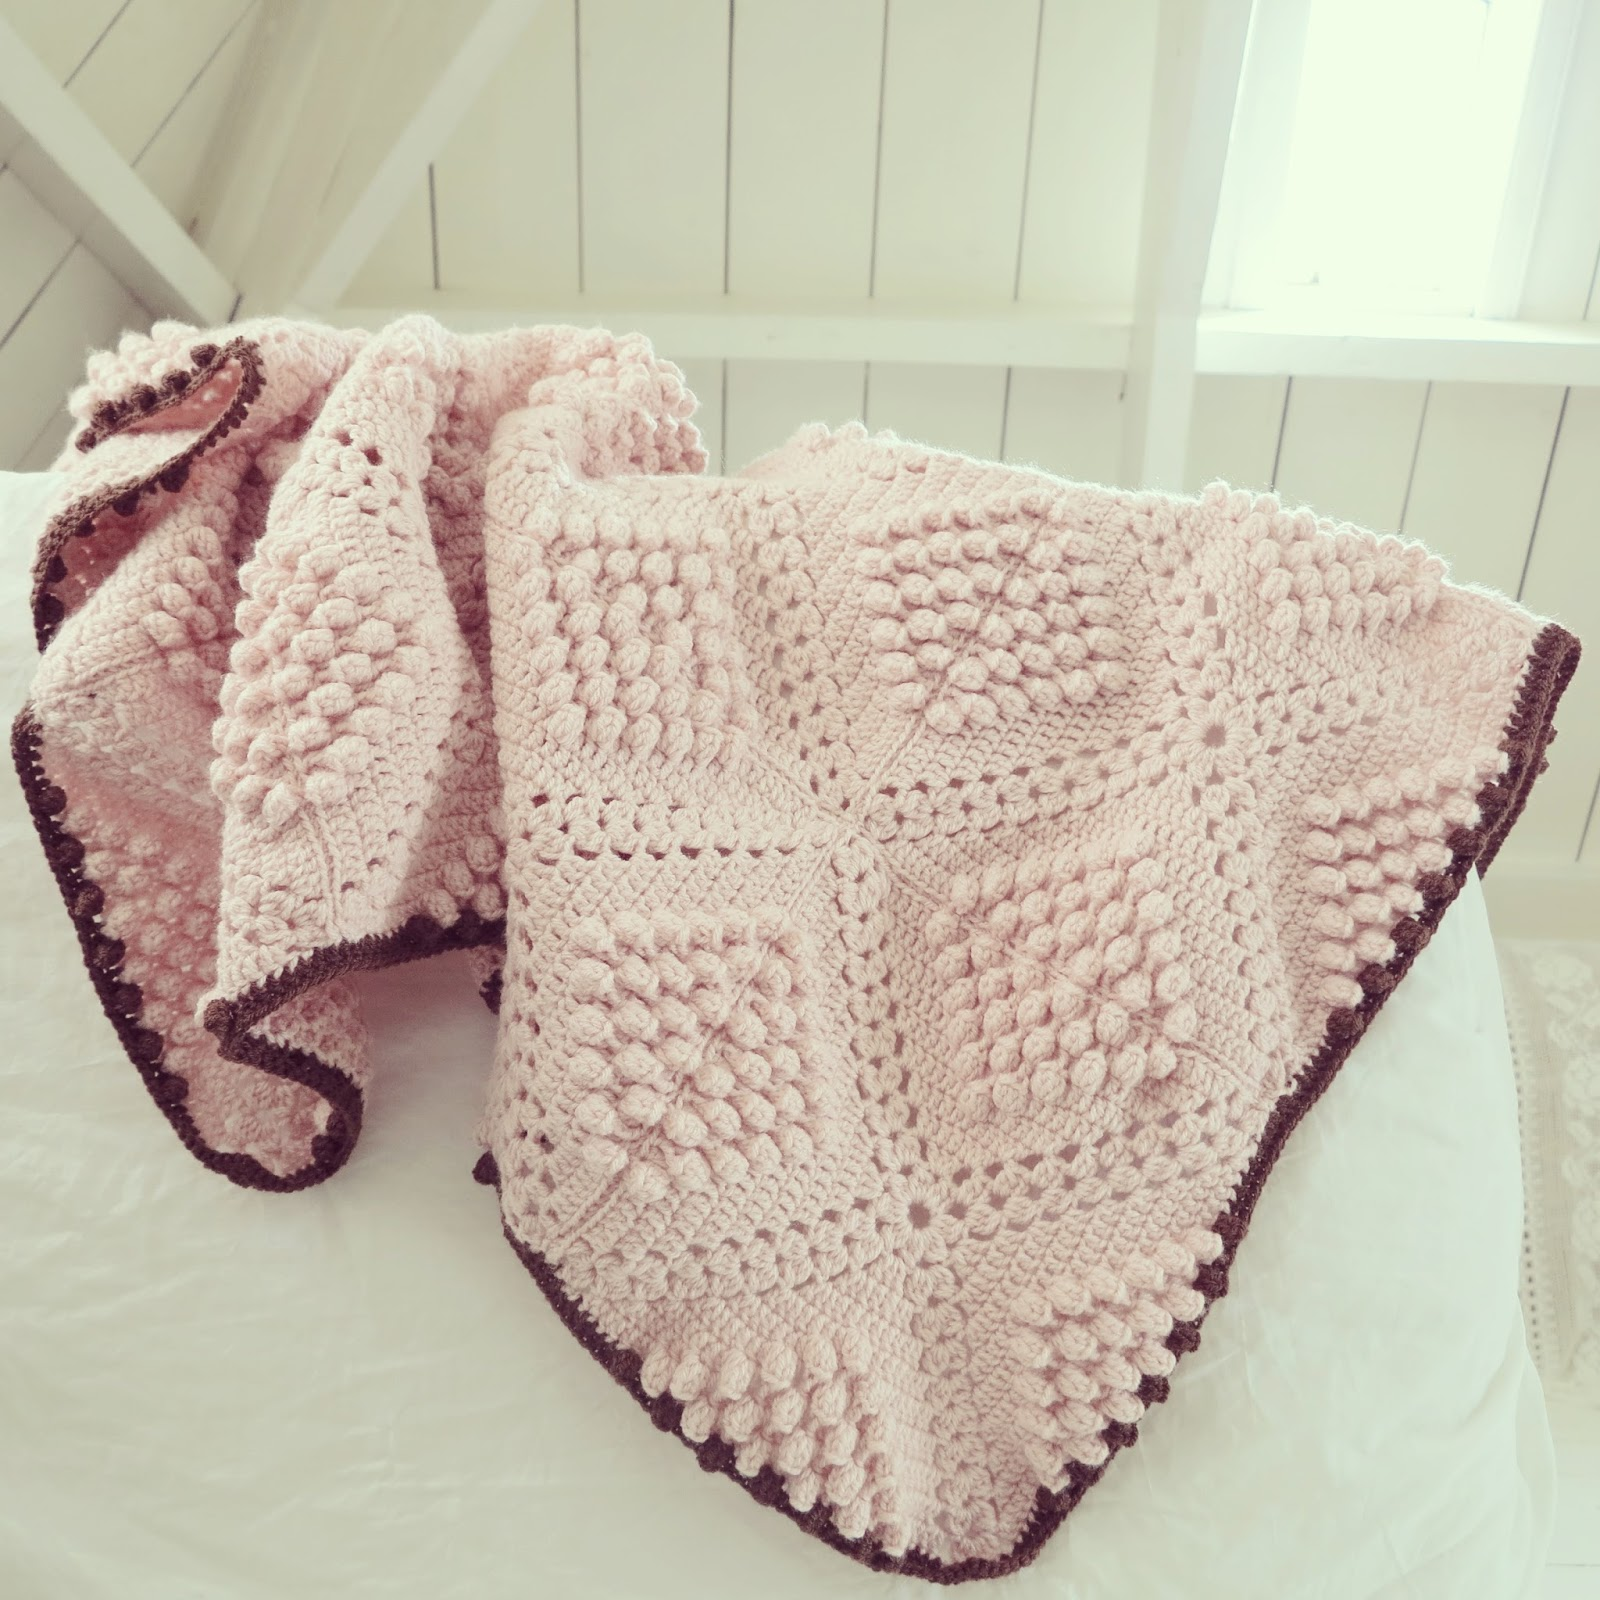 Free Crochet Popcorn Baby Blanket Pattern : 10 Free Crochet Patterns & Tutorials for Baby Blankets ...